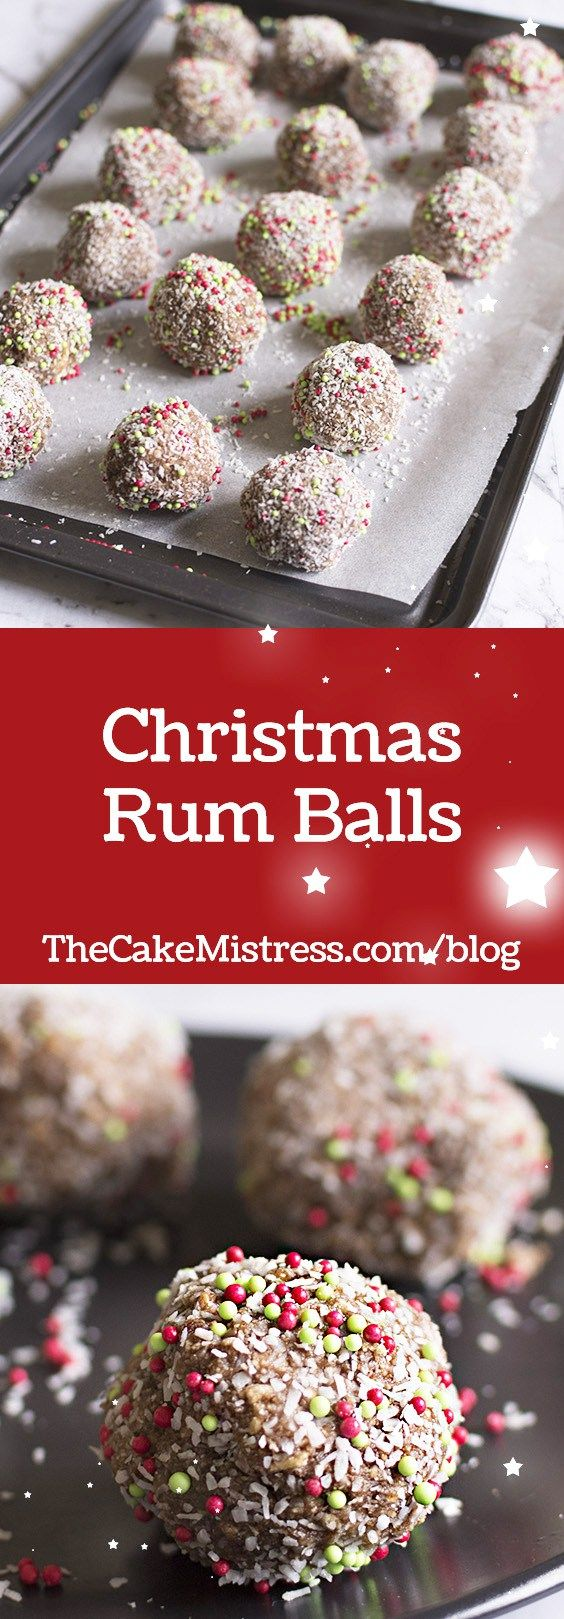 These festive Christmas Rum Balls make great gifts and they're so easy to make! #christmas #baking #rumballs